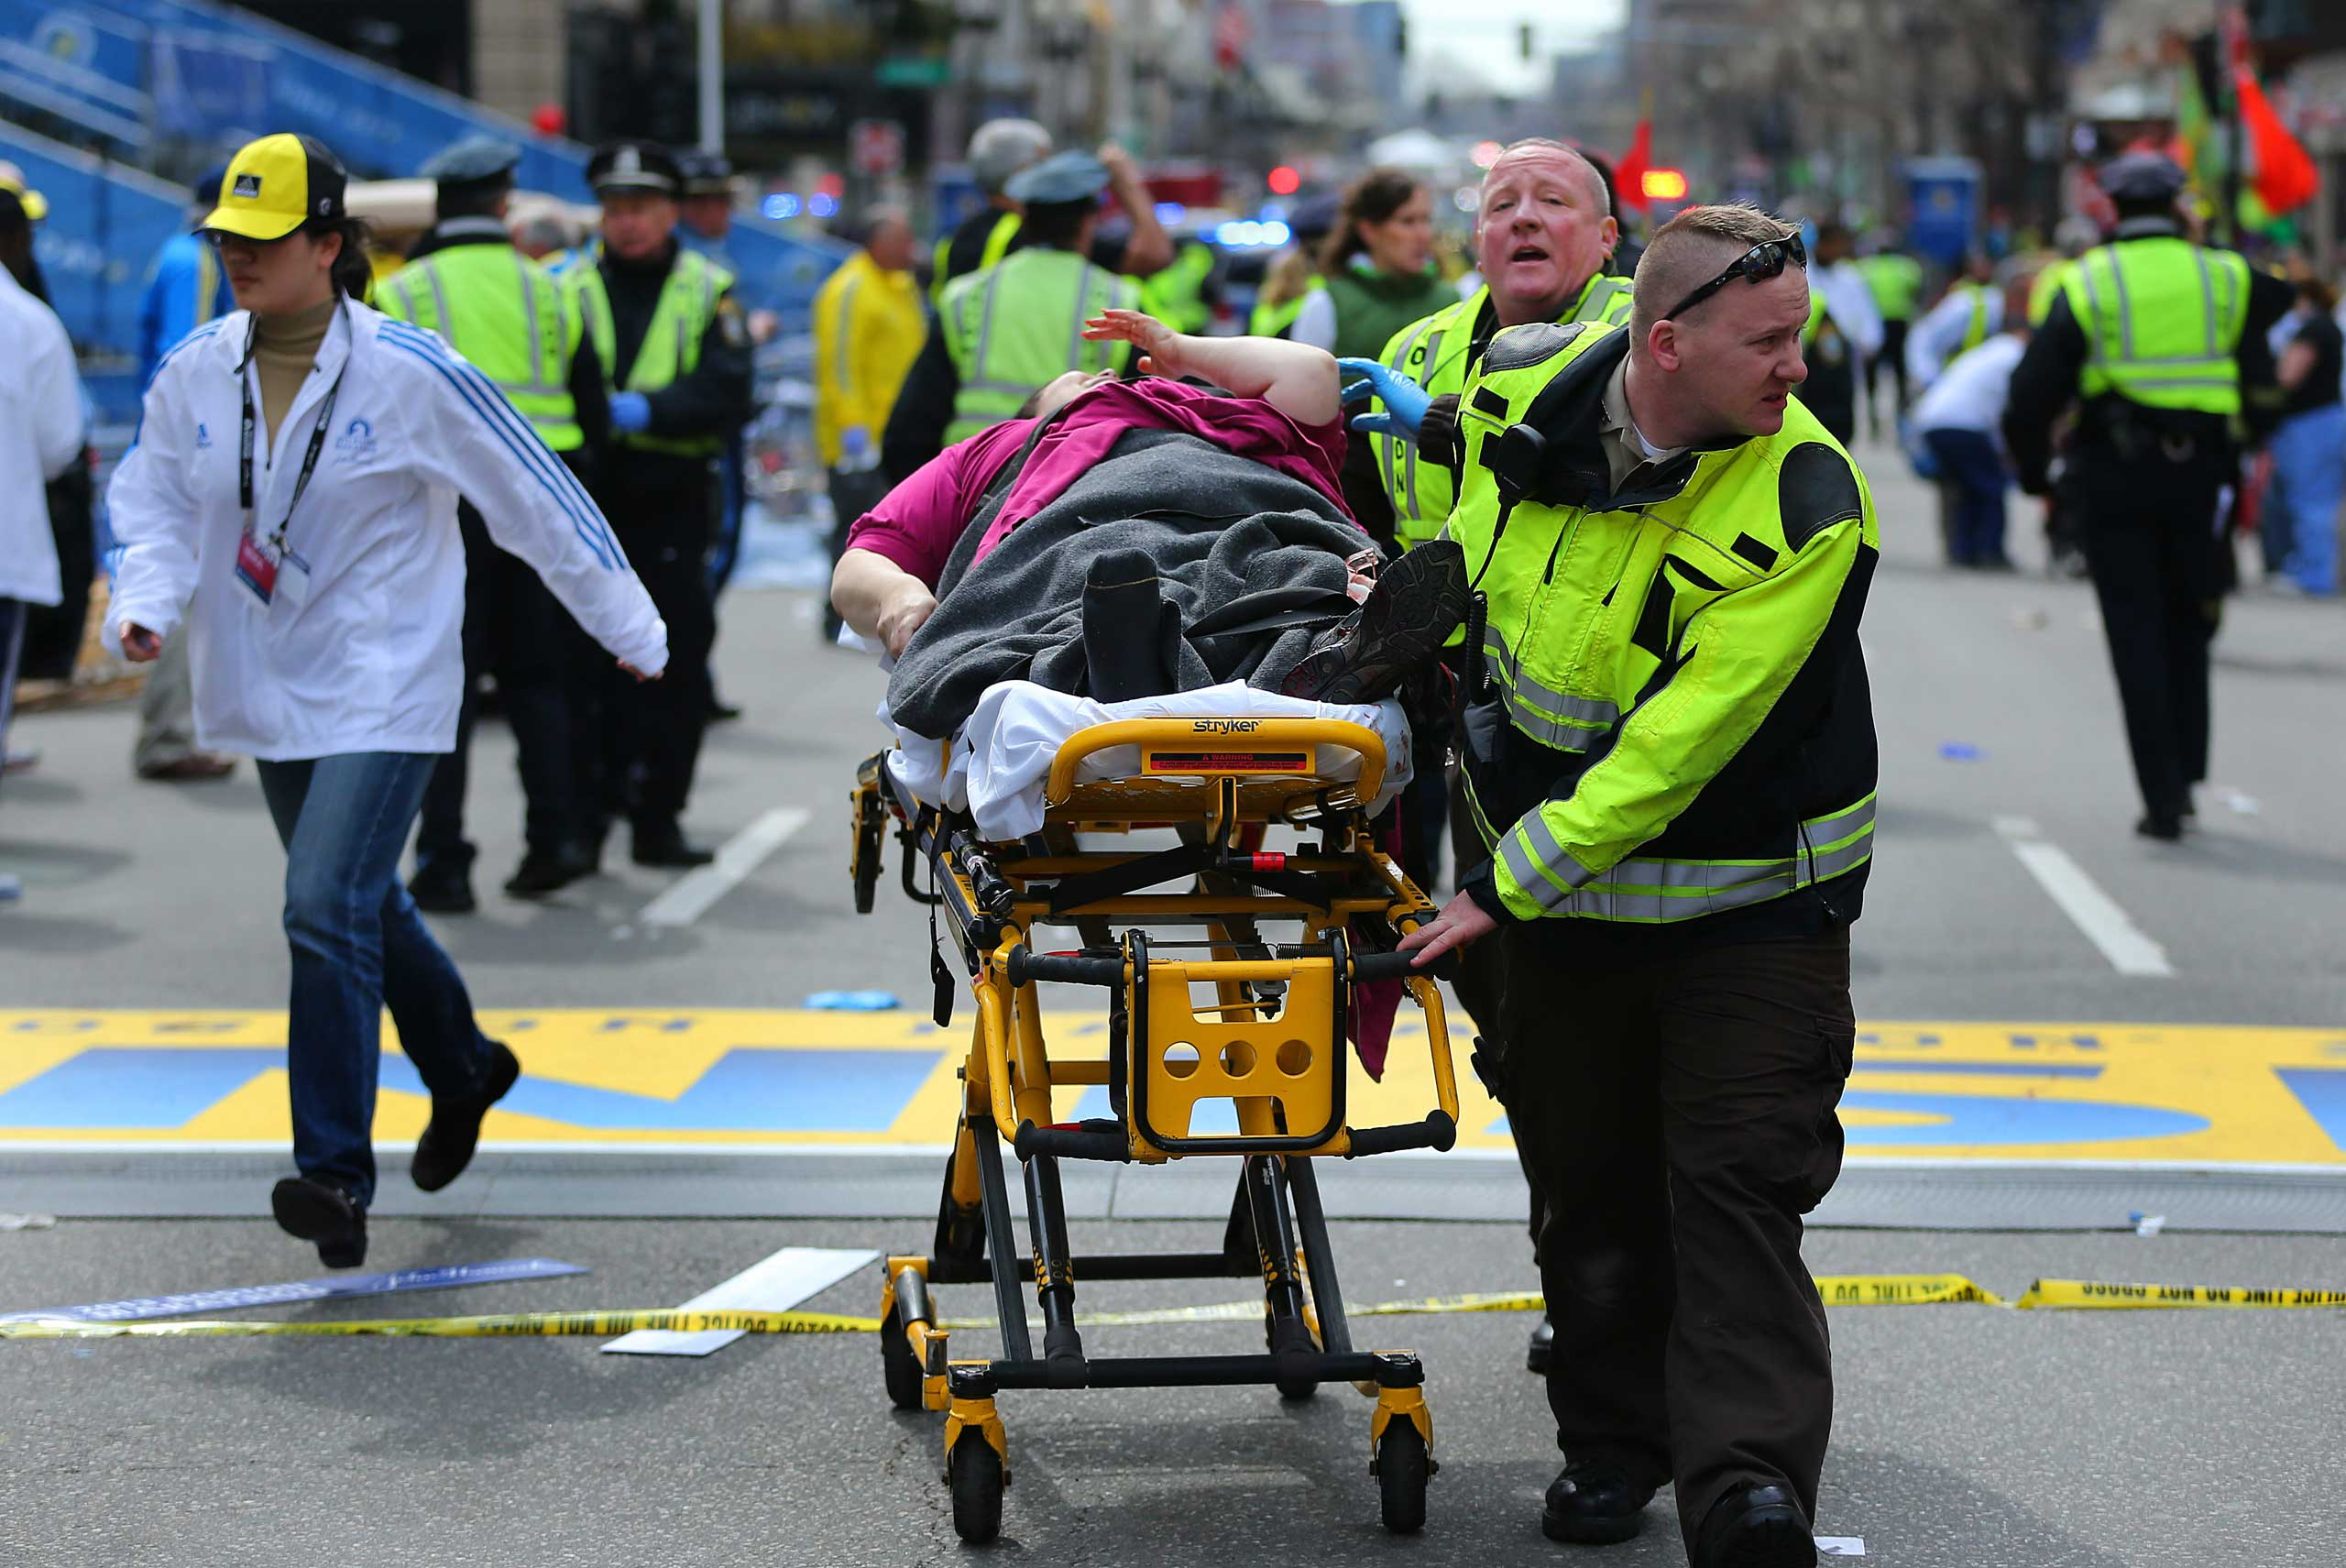 April 15, 2013. A victim from the explosion is wheeled away from the scene by emergency personnel.